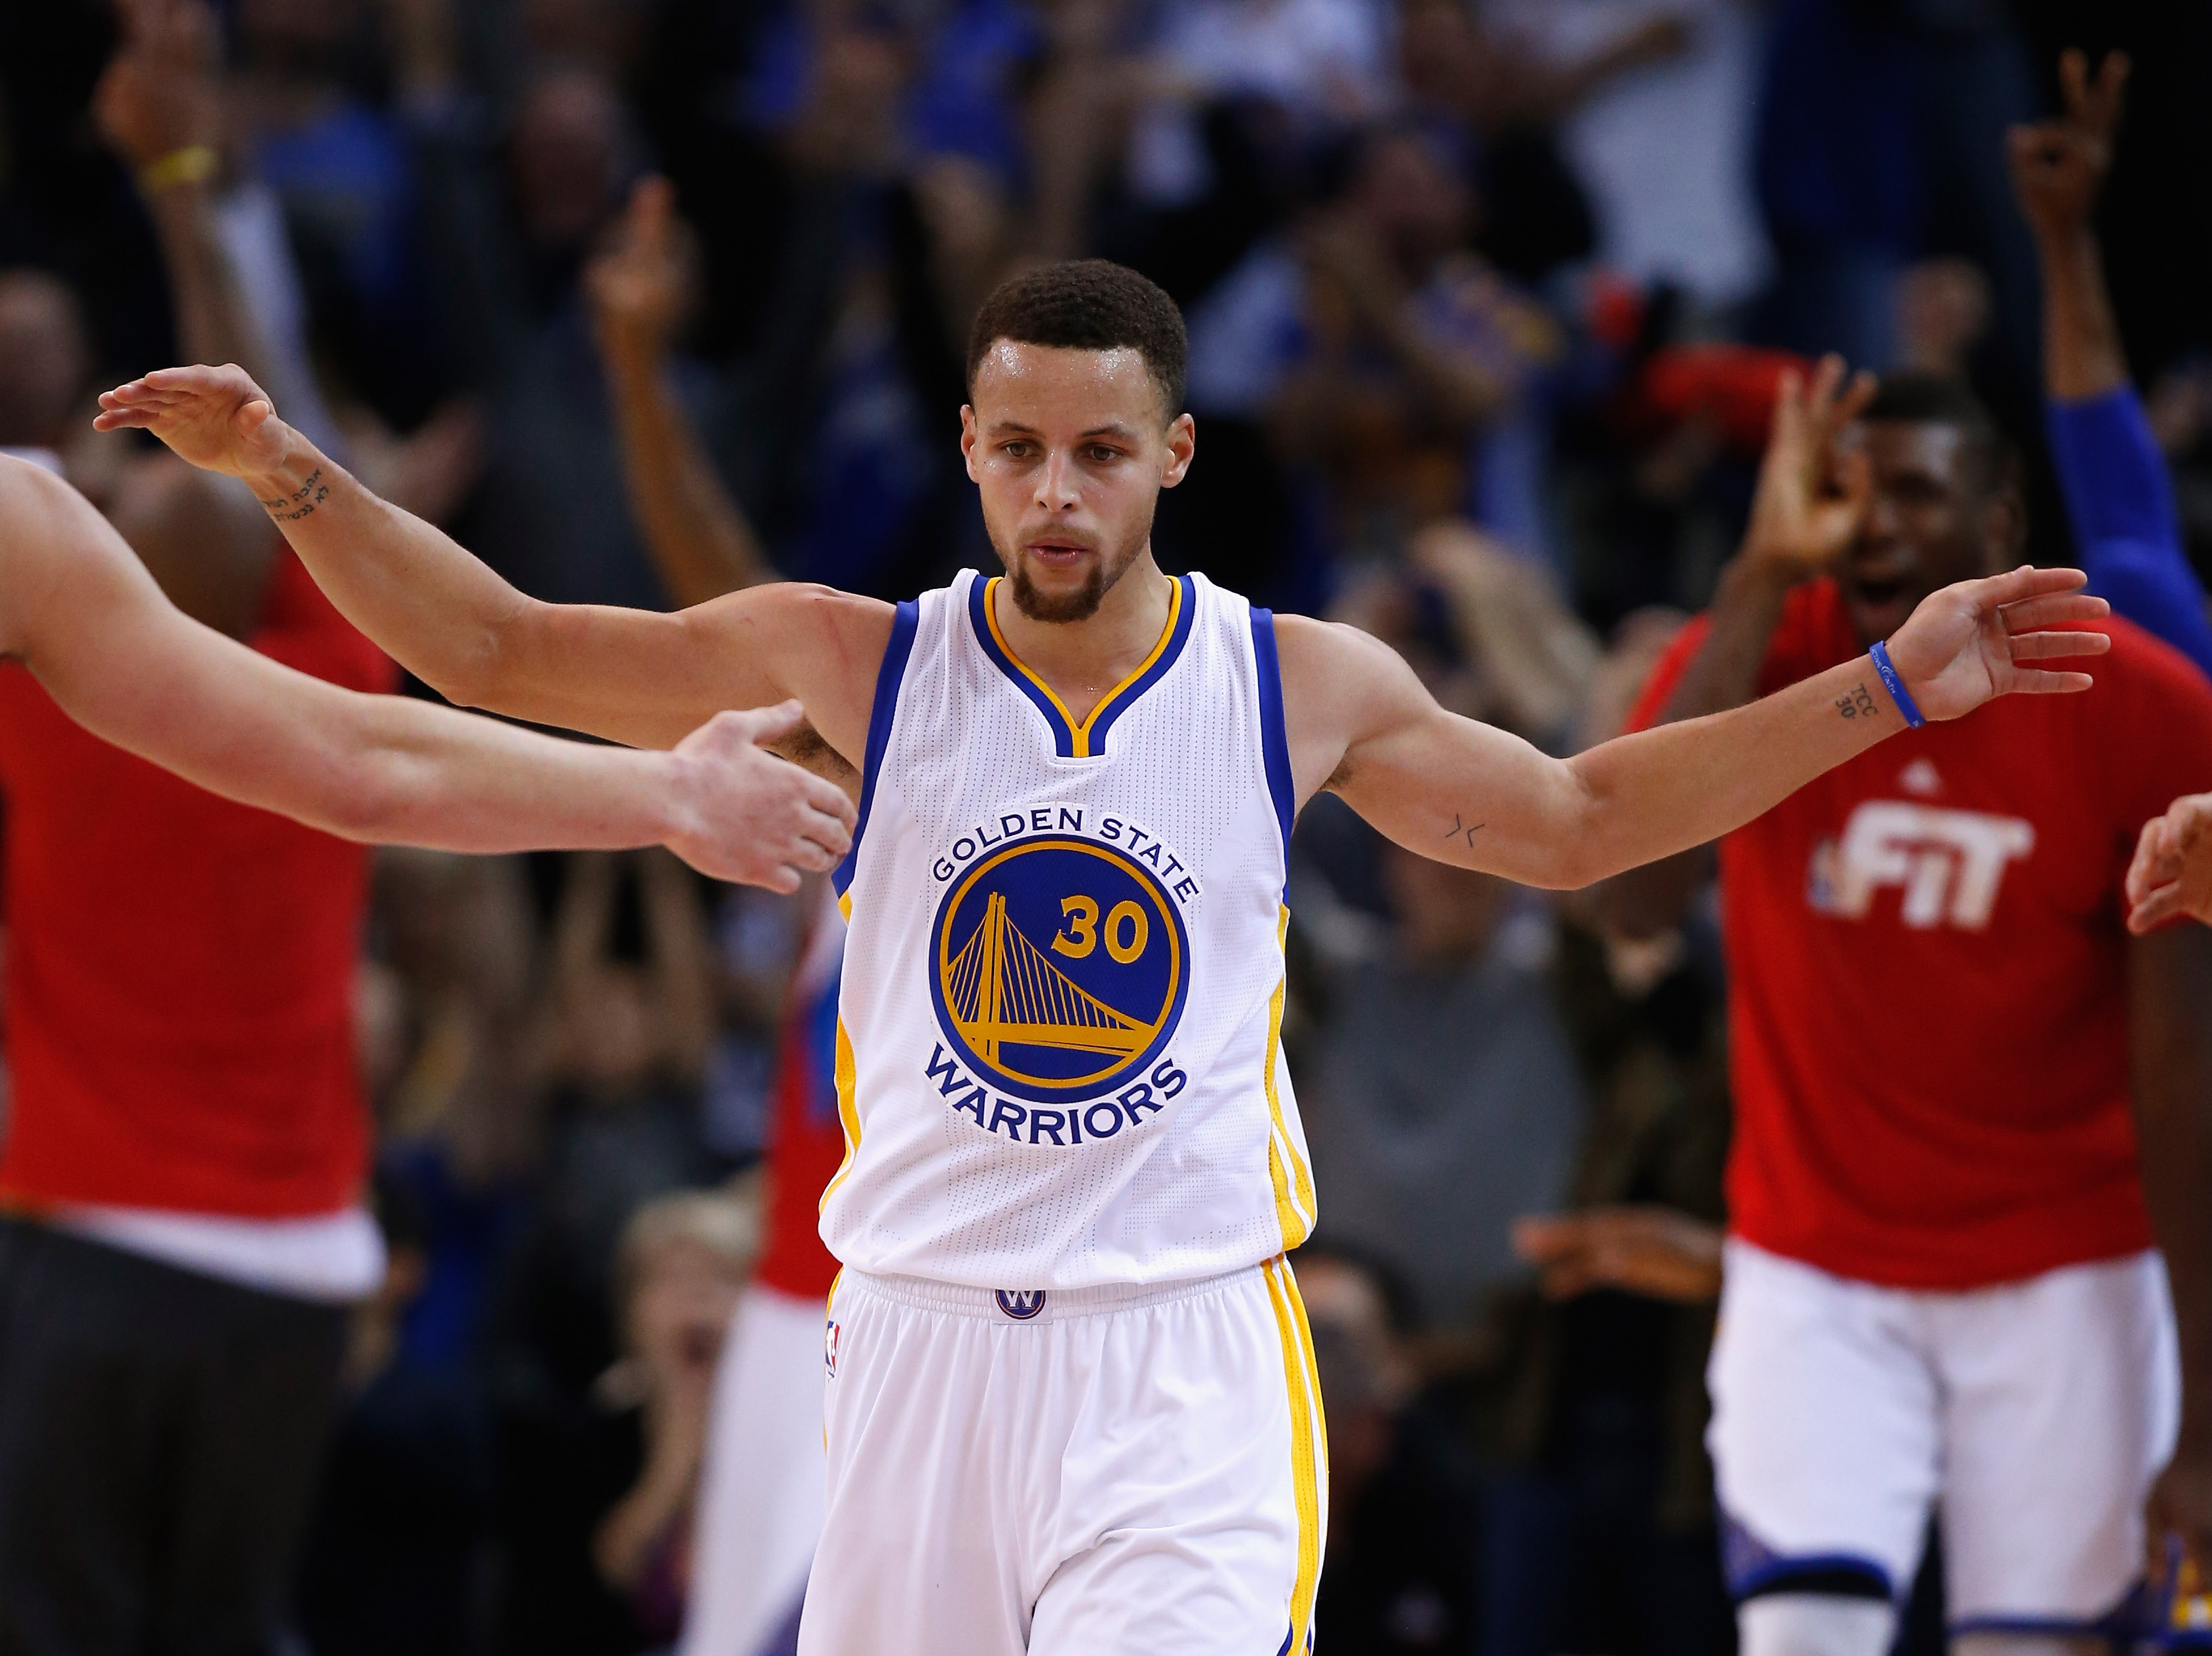 OAKLAND, CA - JANUARY 22:  Stephen Curry #30 of the Golden State Warriors reacts after making a three-point basket against the Indiana Pacers at ORACLE Arena on January 22, 2016 in Oakland, California. (Photo by Ezra Shaw/Getty Images)